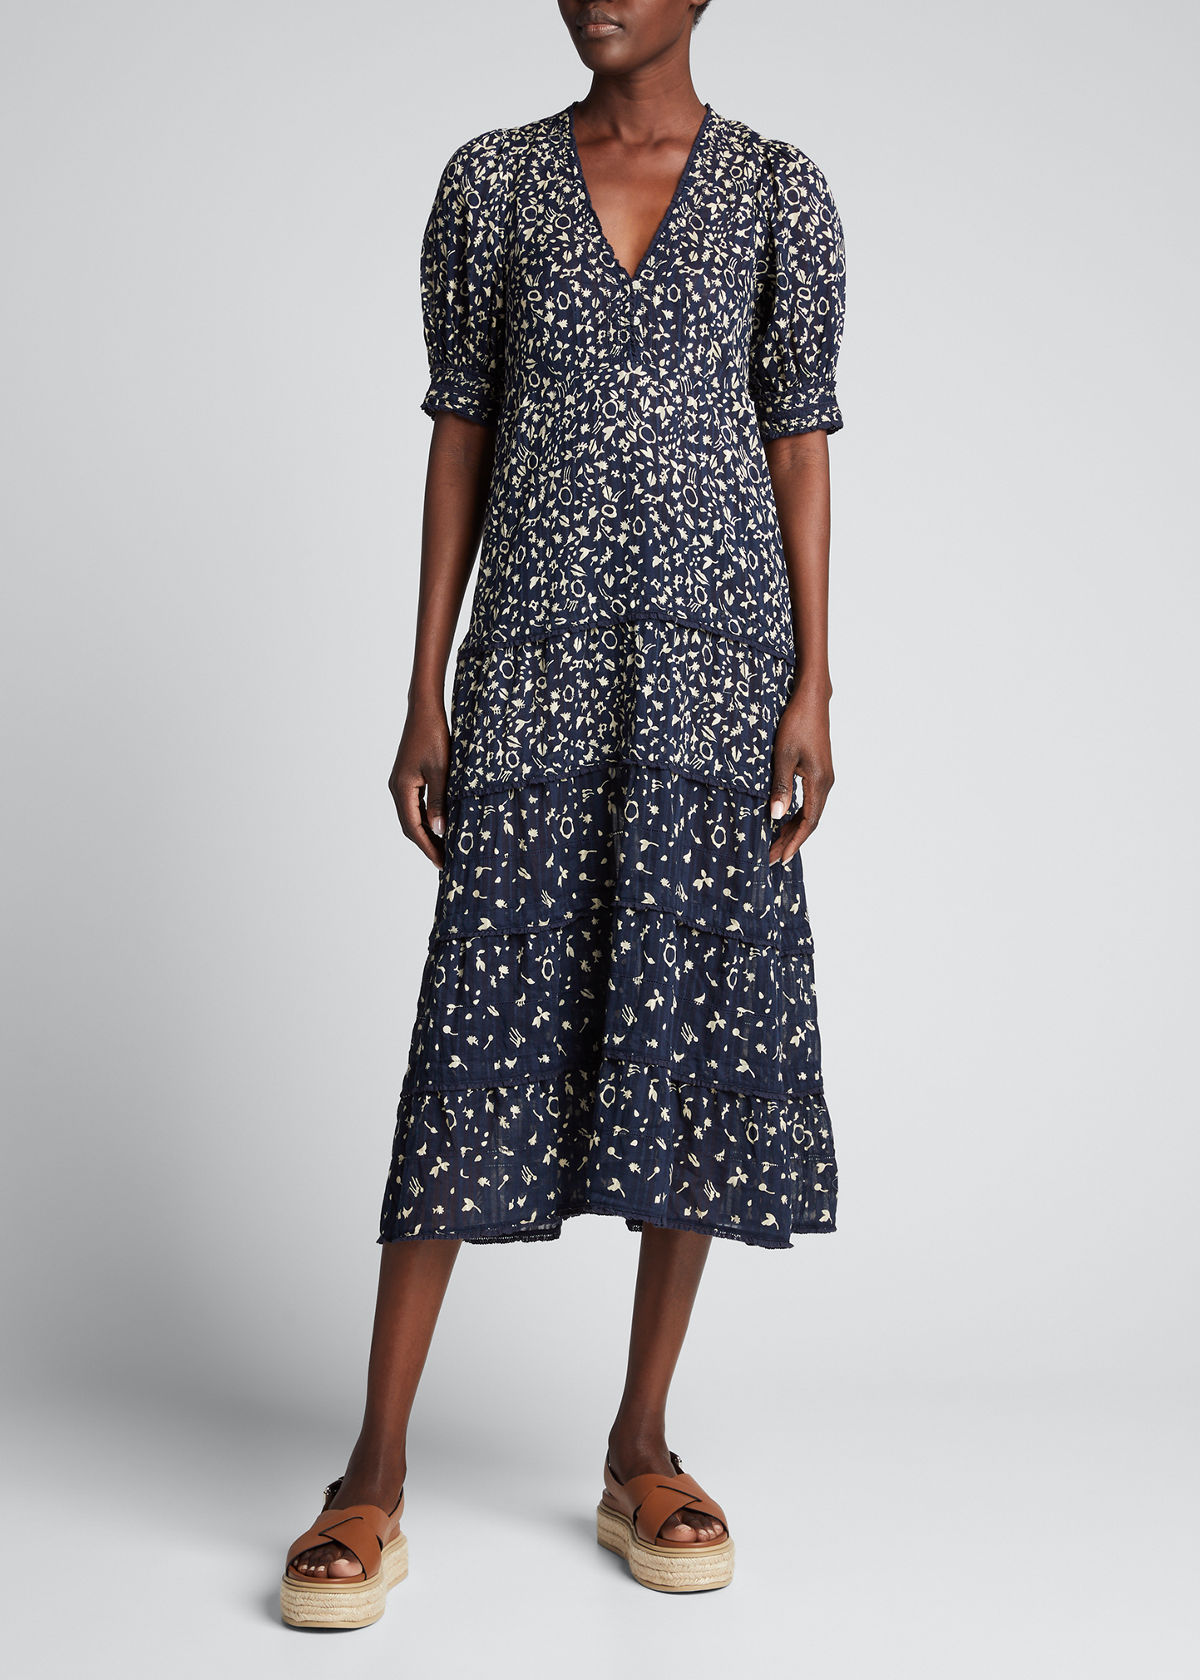 The Great Dresses THE YONDER MIDI DRESS